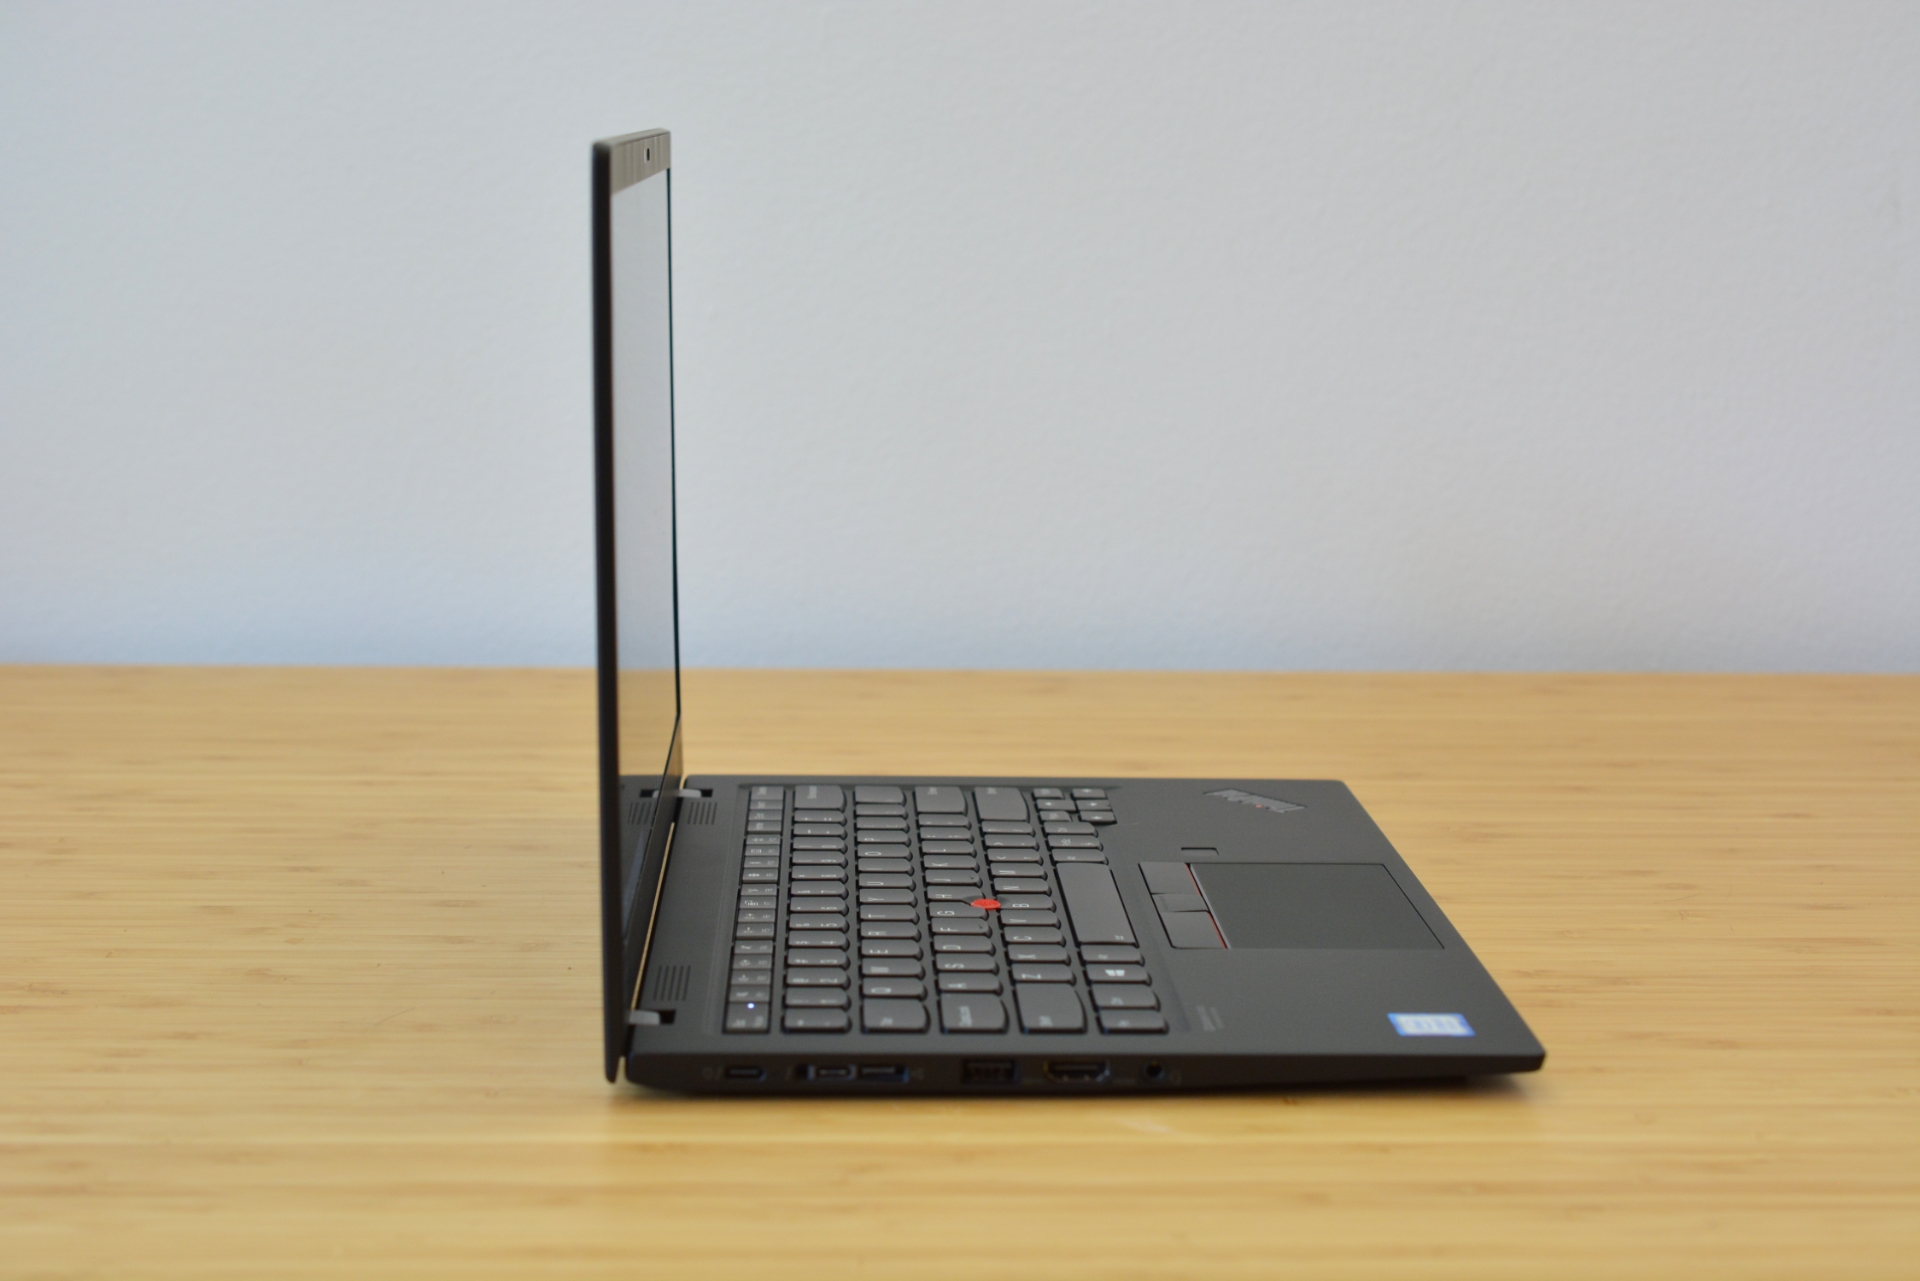 The thinner, lighter ThinkPad X1 Carbon 7th-gen.